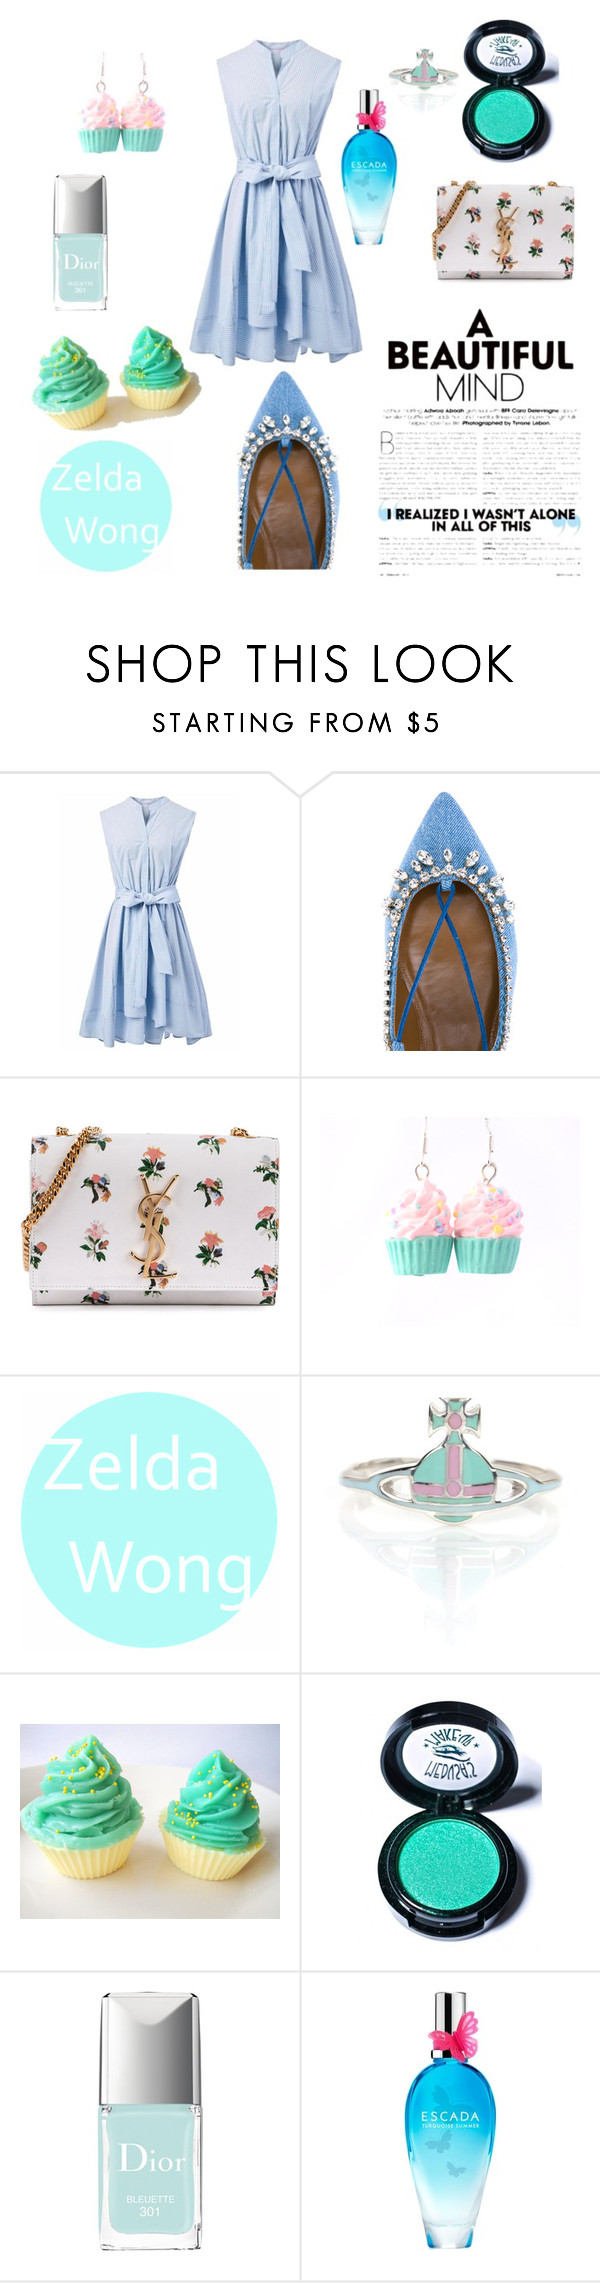 """Untitled #38"" by alishayu on Polyvore featuring Chicwish, Aquazzura, Yves Saint Laurent, Vivienne Westwood, Medusa's Makeup, Christian Dior and ESCADA"